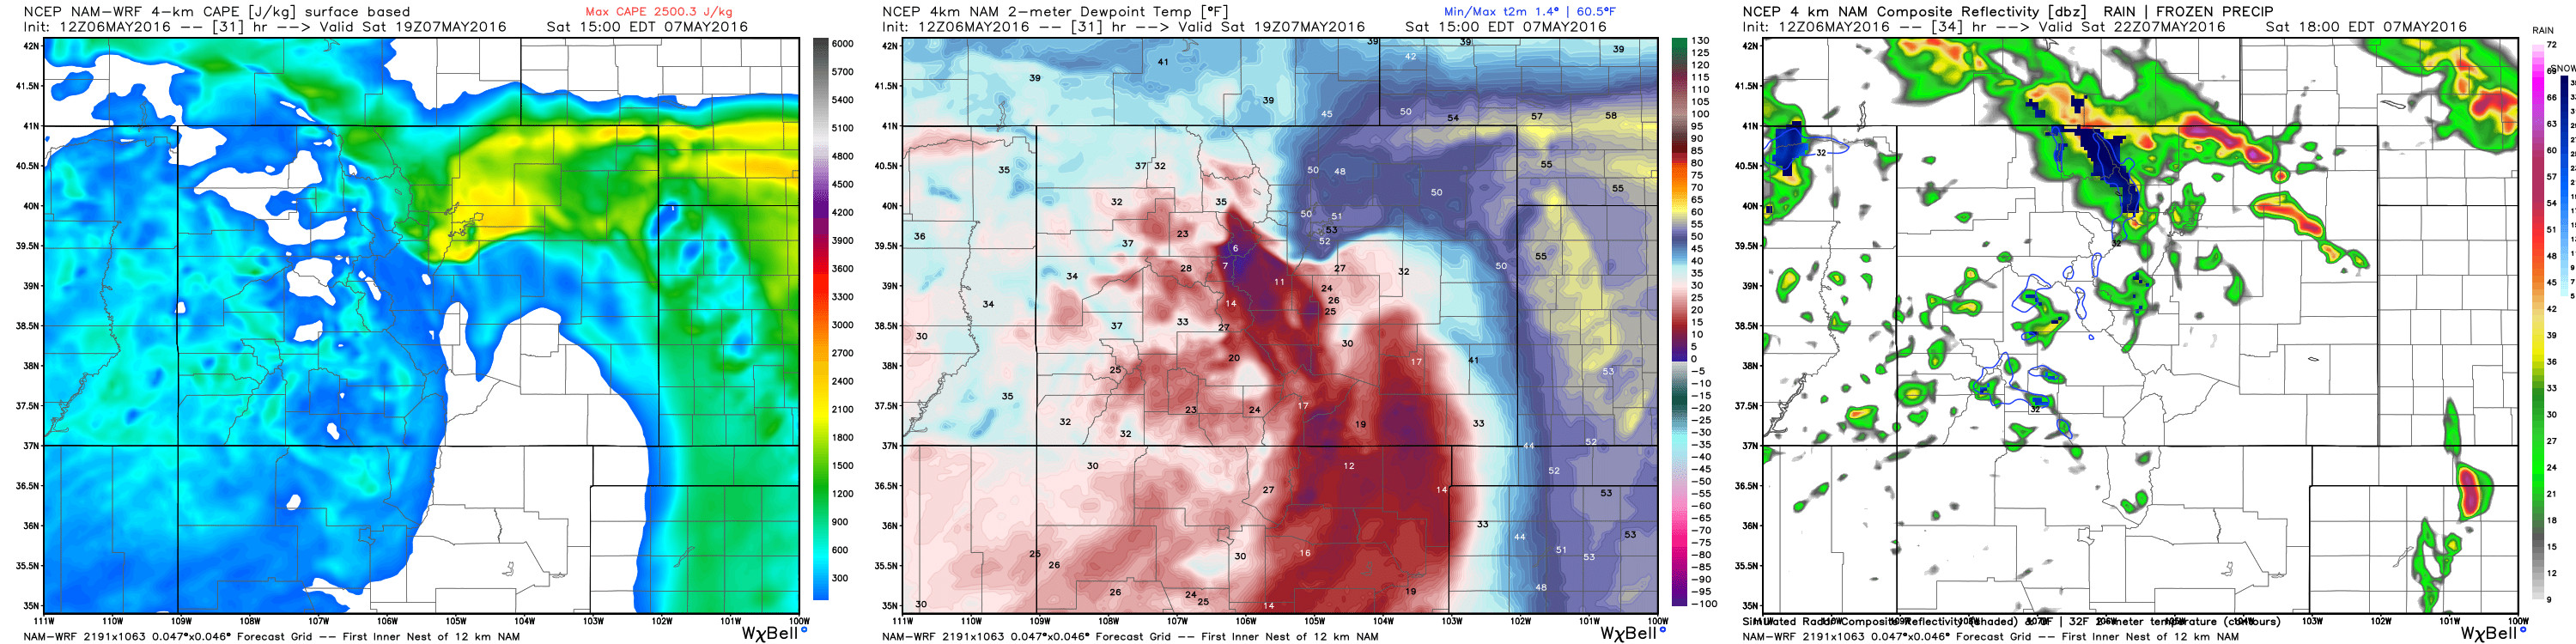 4km NAM showing CAPE >1300 (left) dews in the 50s (center) and forecast simulated radar (right) Saturday afternoon across northeast Colorado | WeatherBell Analytics